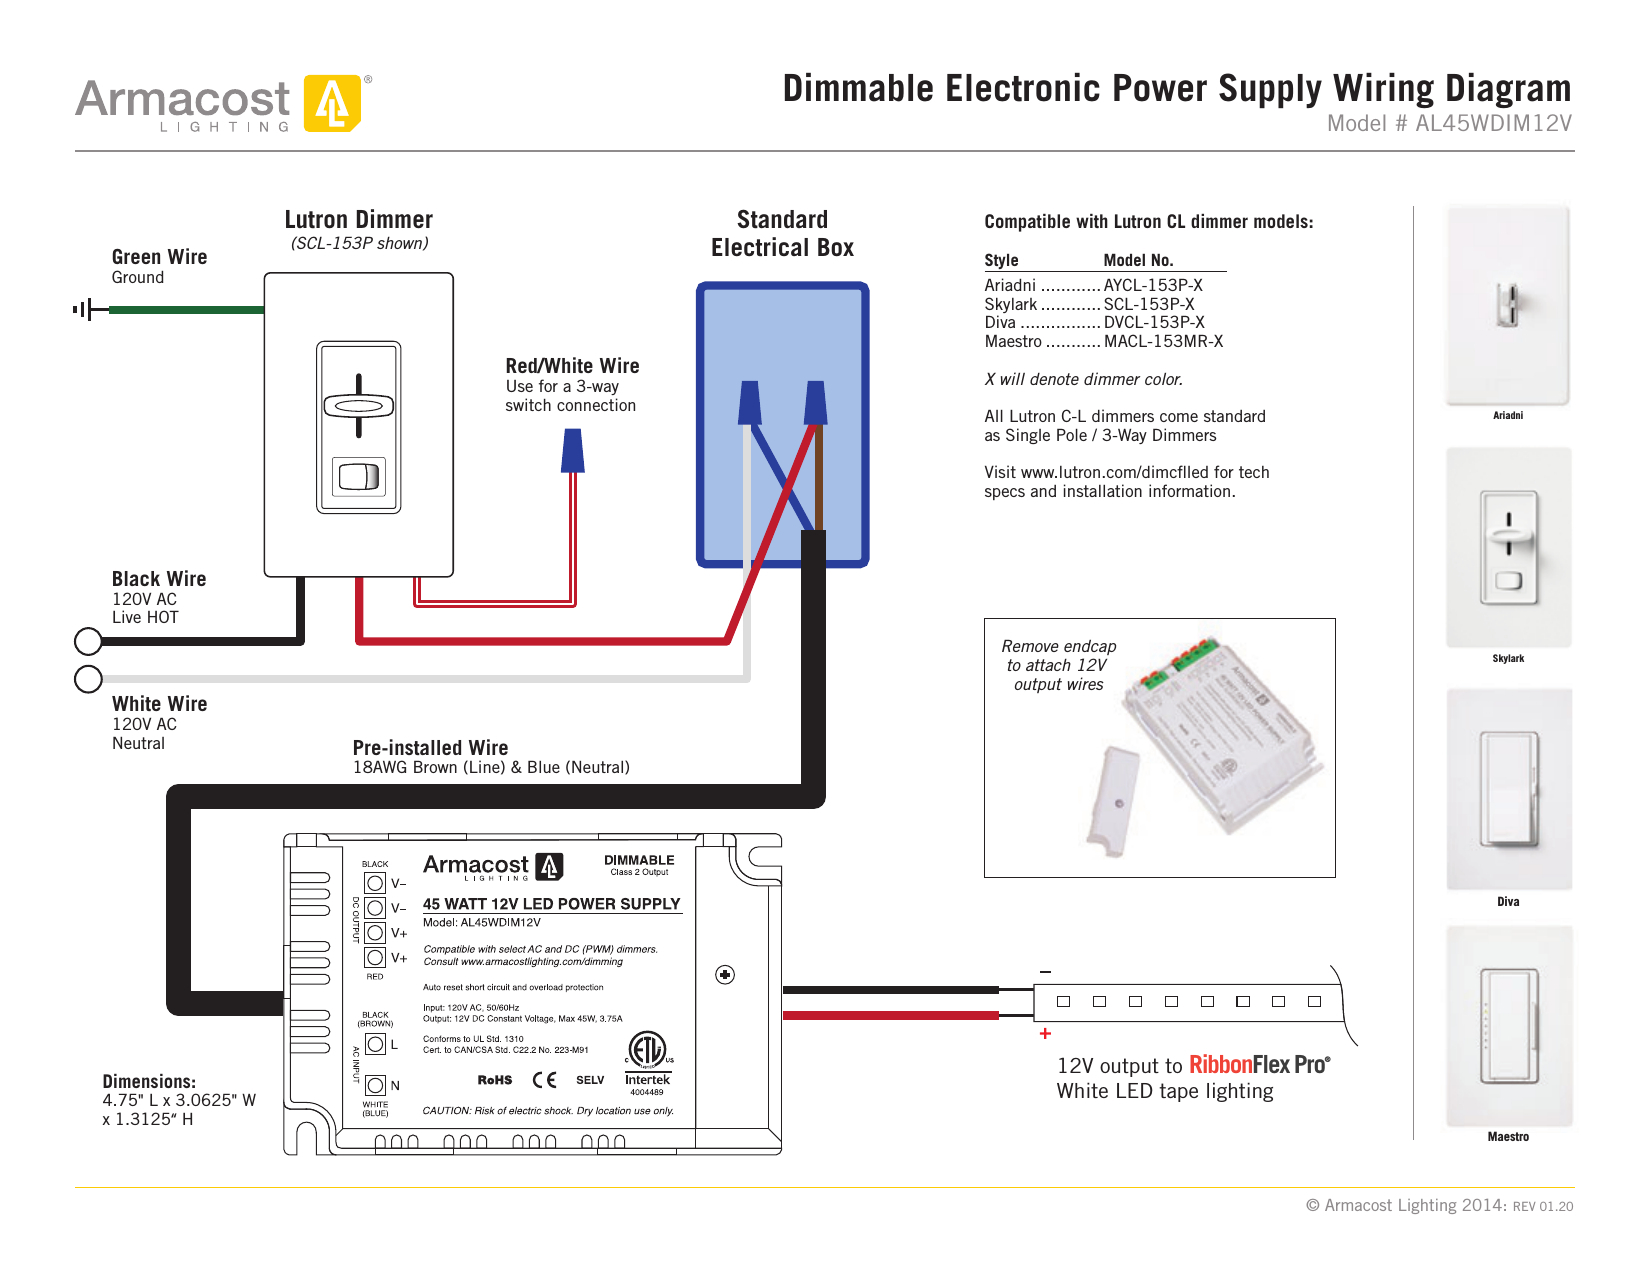 lutron skylark dimmer wiring diagram Download-lutron diva cl wiring diagram Collection lutron skylark dimmer wiring diagram Unique Lutron Dimmer Switch 7-d